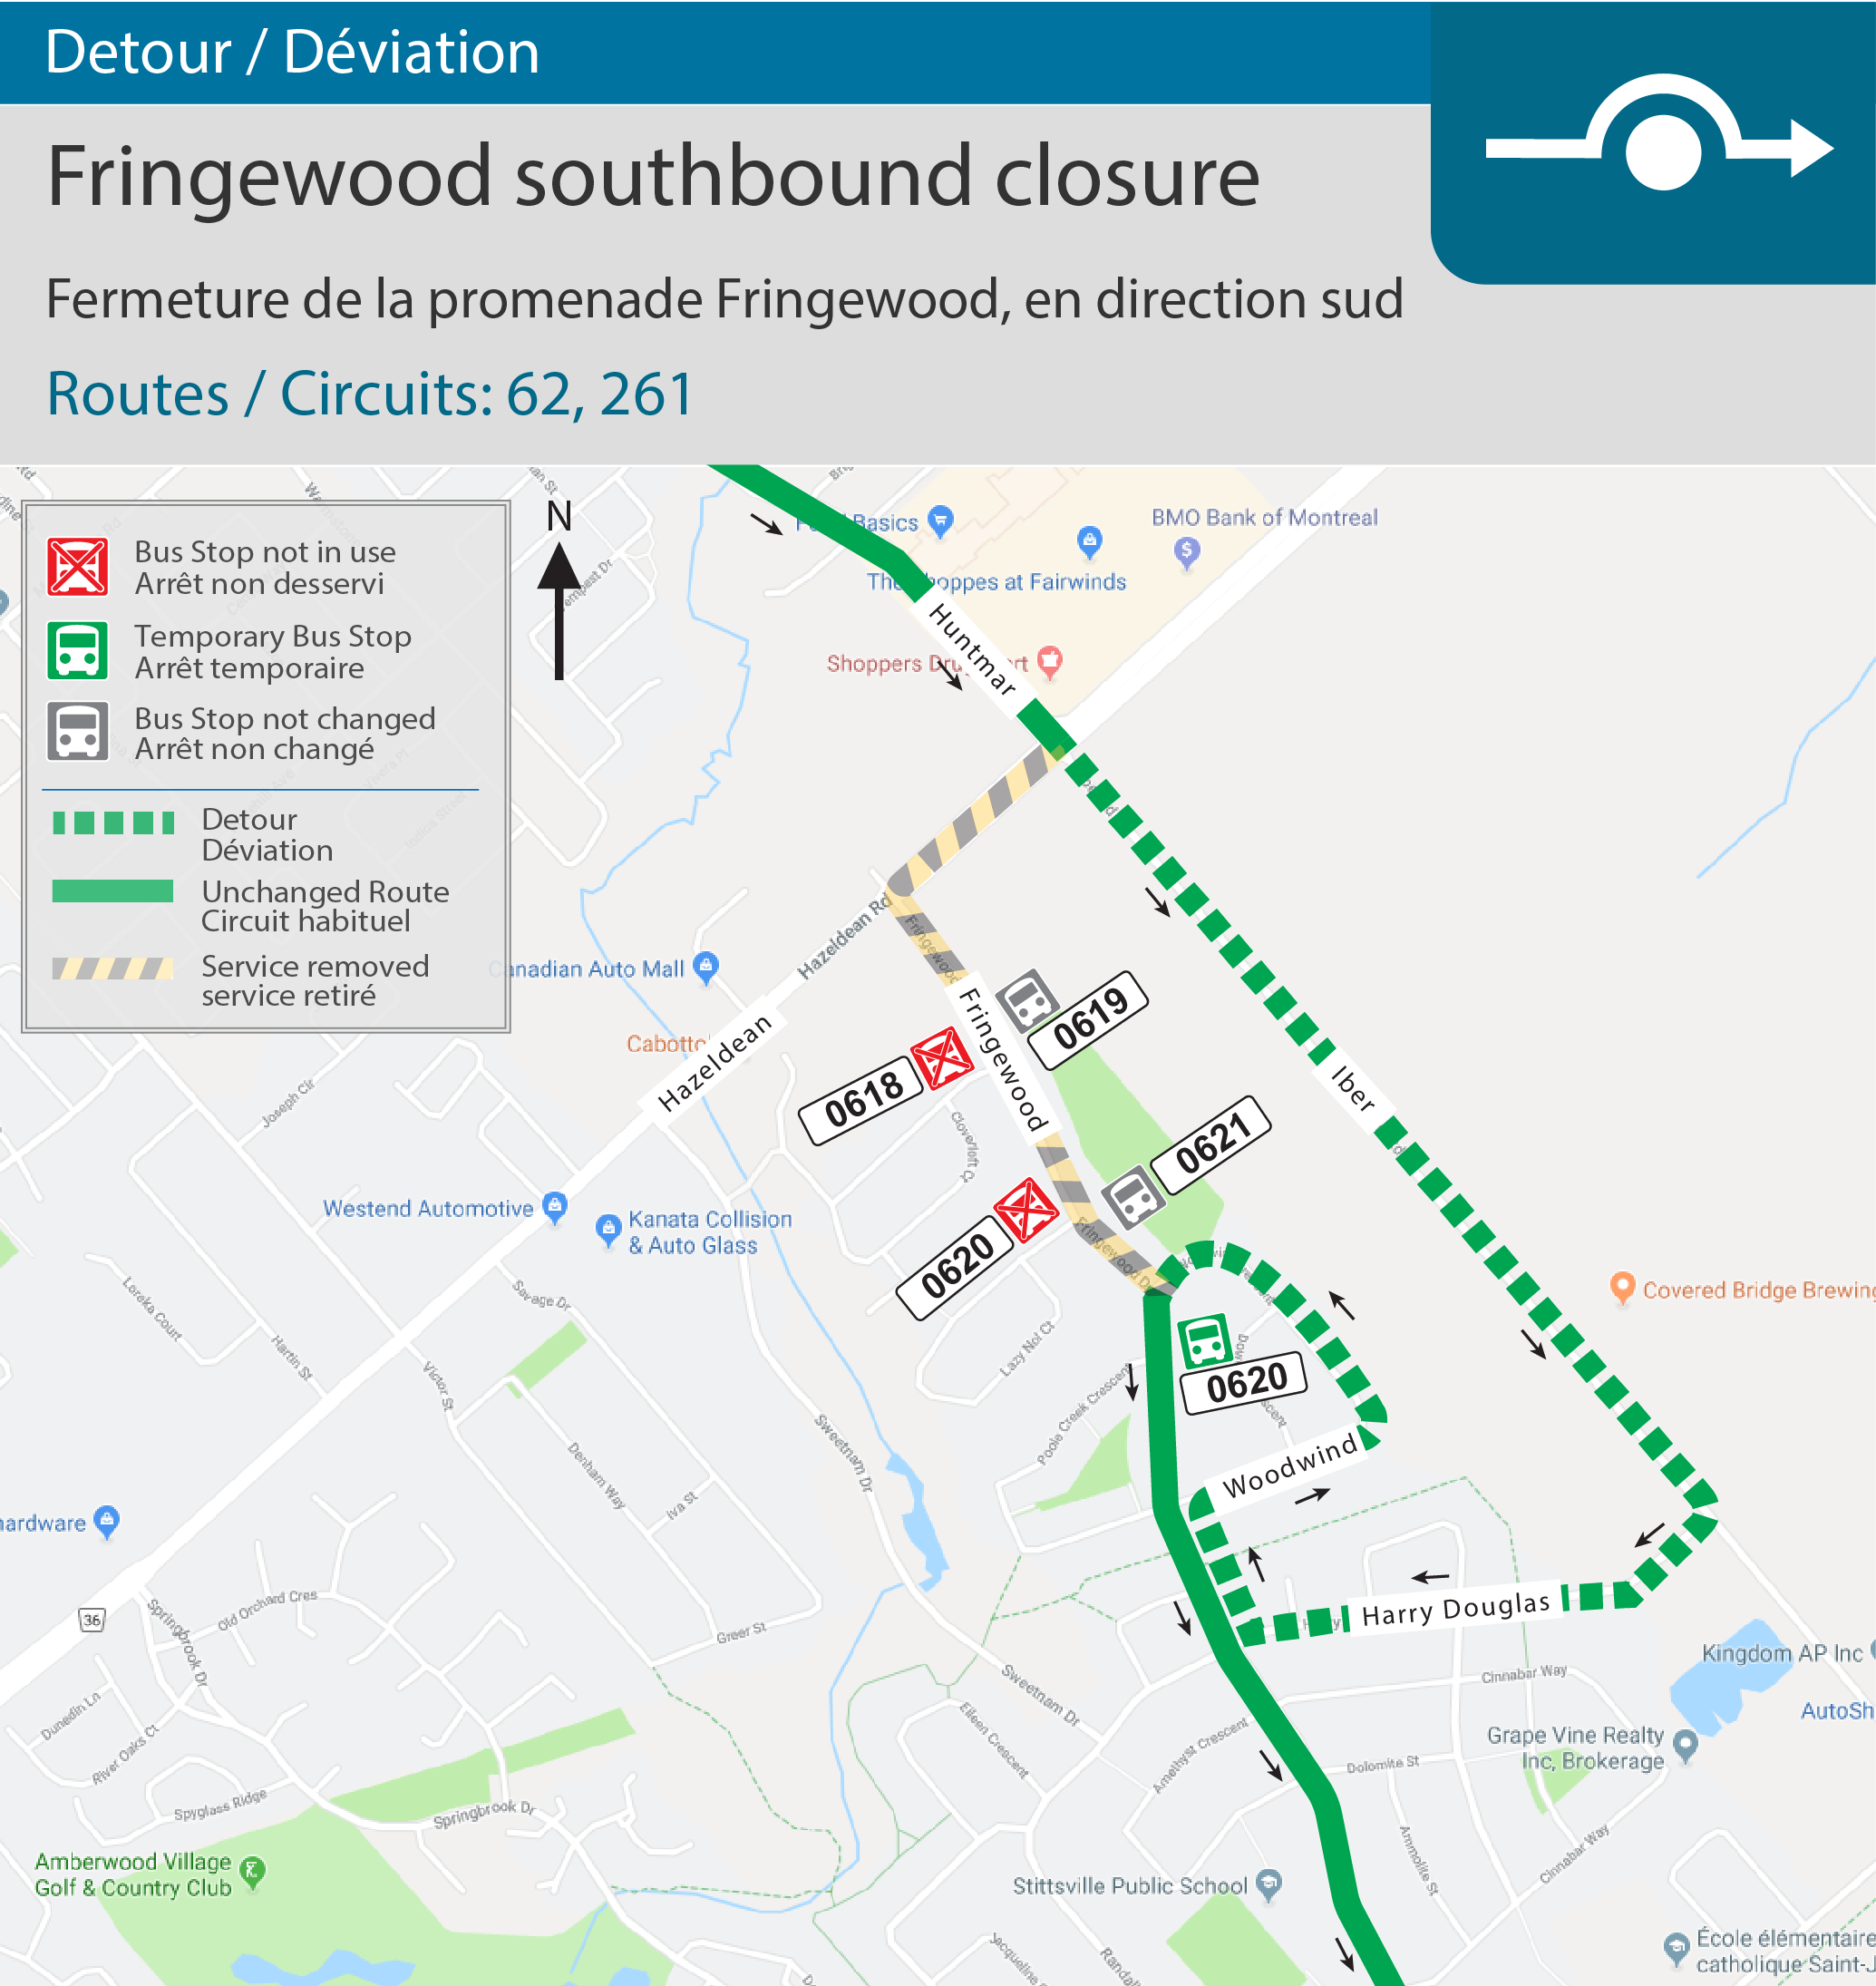 Map for Fringewood southbound closure